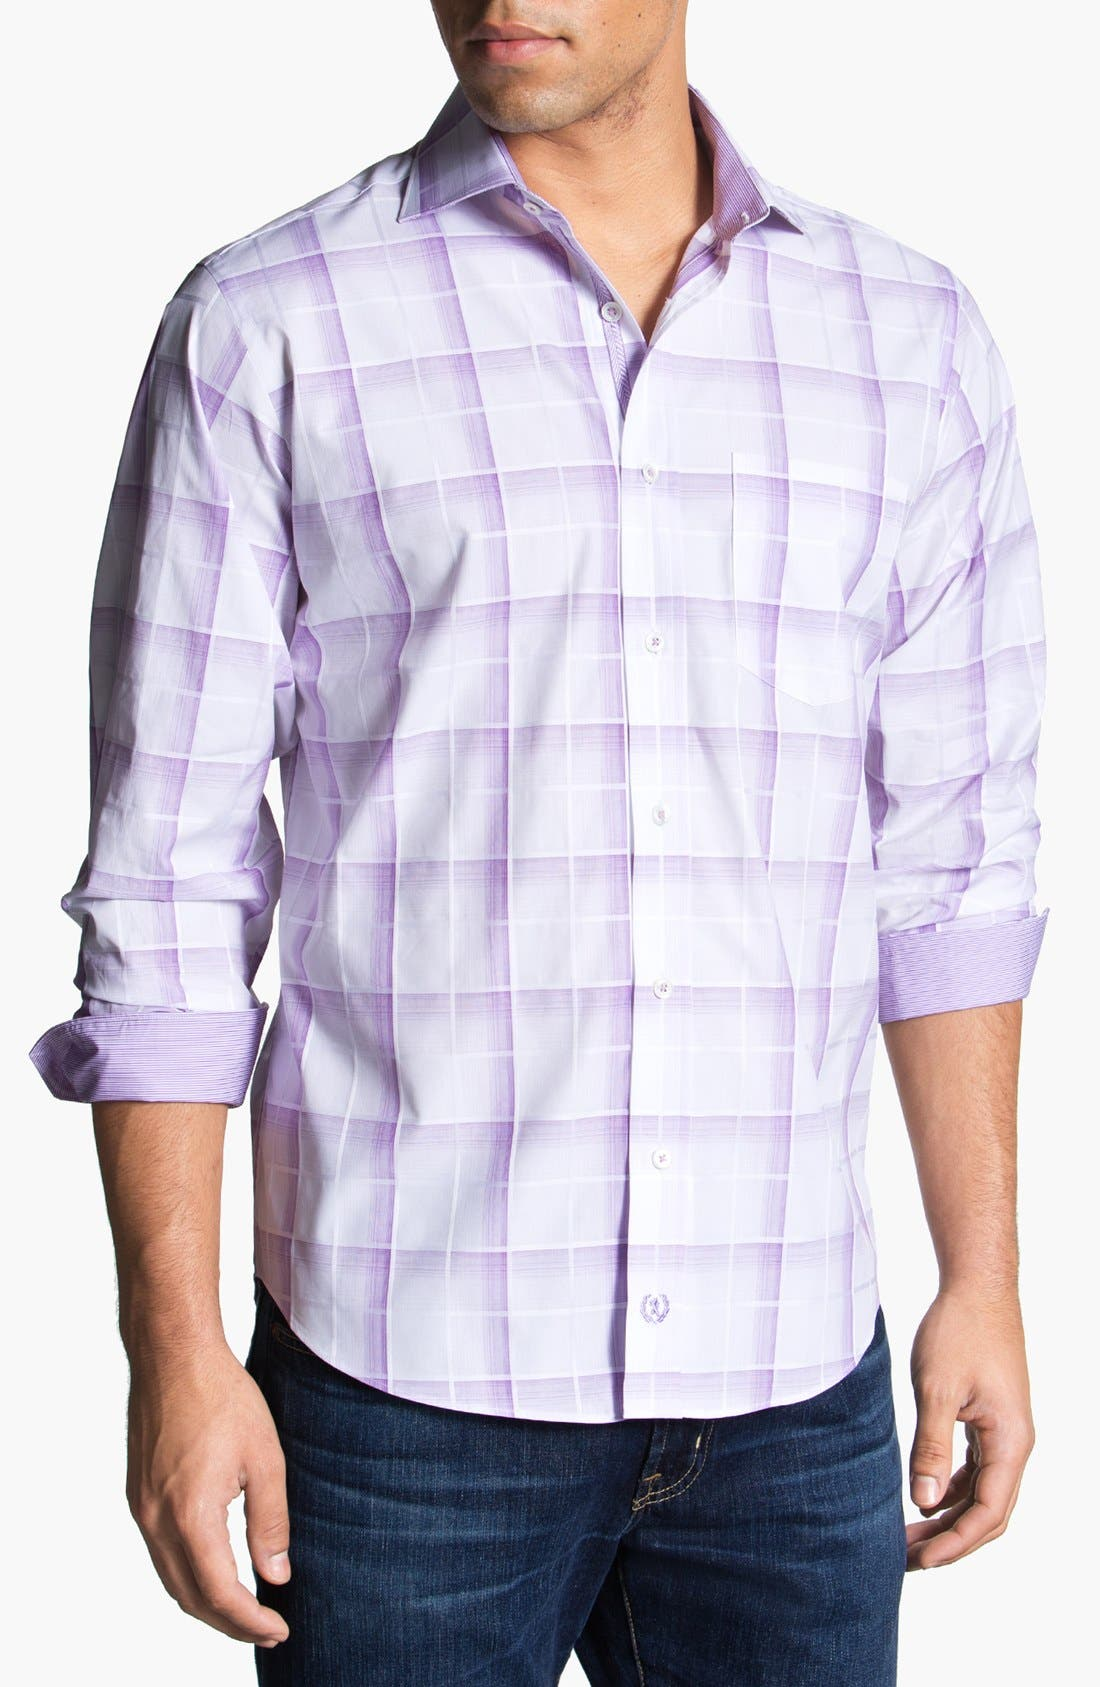 Alternate Image 1 Selected - Bugatchi Check Classic Fit Cotton Sport Shirt (Tall)